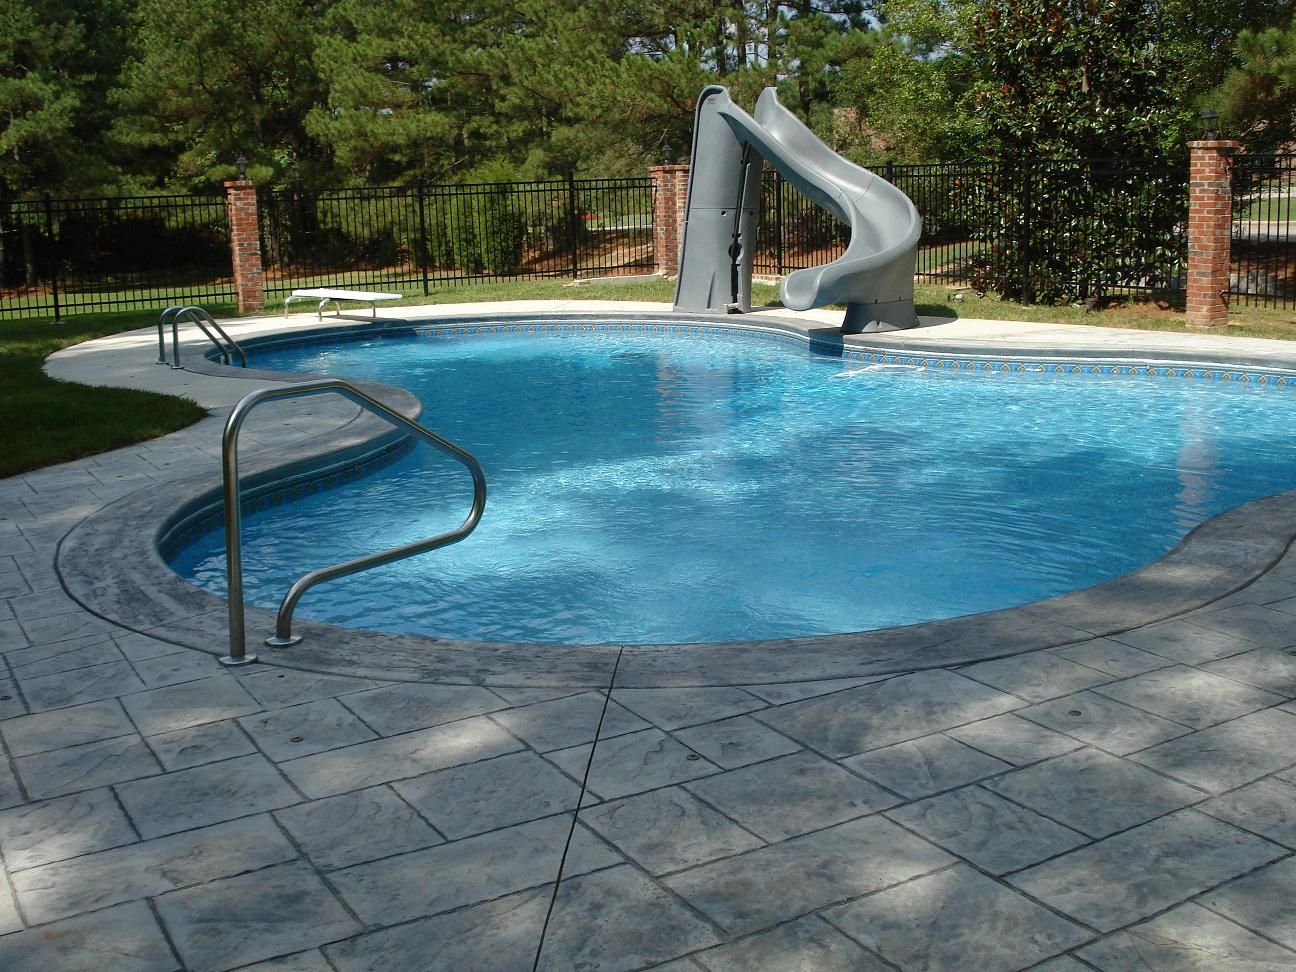 Swimming pool nice swimming pool design with slide how to - How to build a swimming pool slide ...